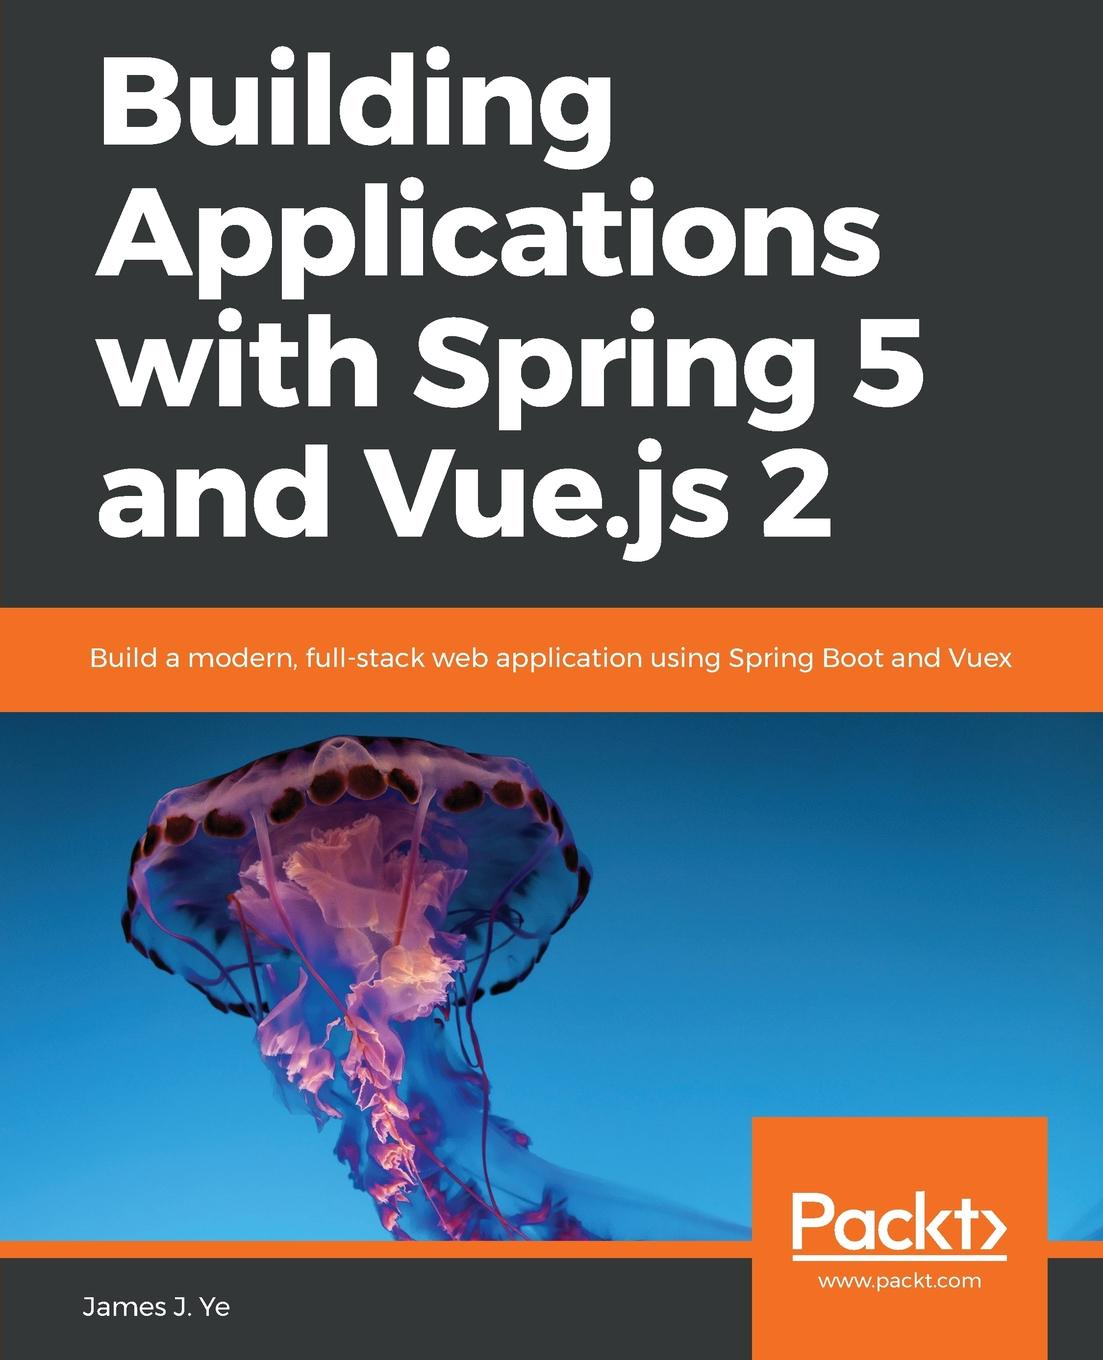 James J. Ye Building Applications with Spring 5 and Vue.js 2